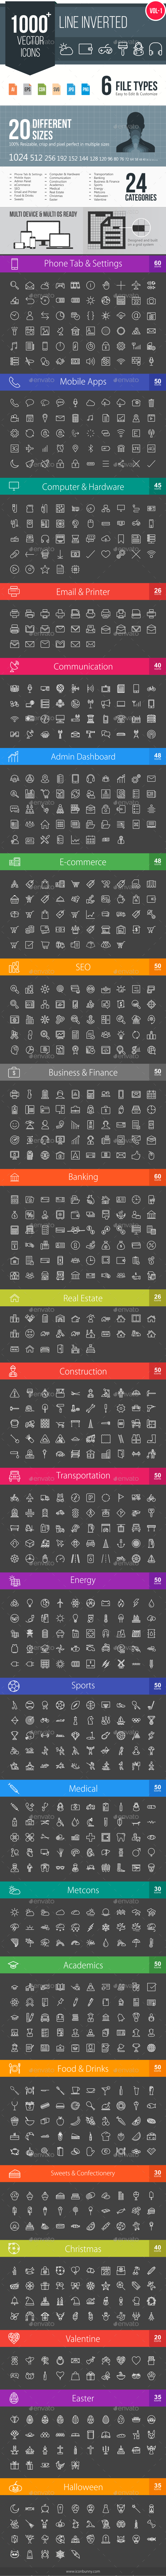 GraphicRiver 1000& Line Inverted Vector Icons 11578848